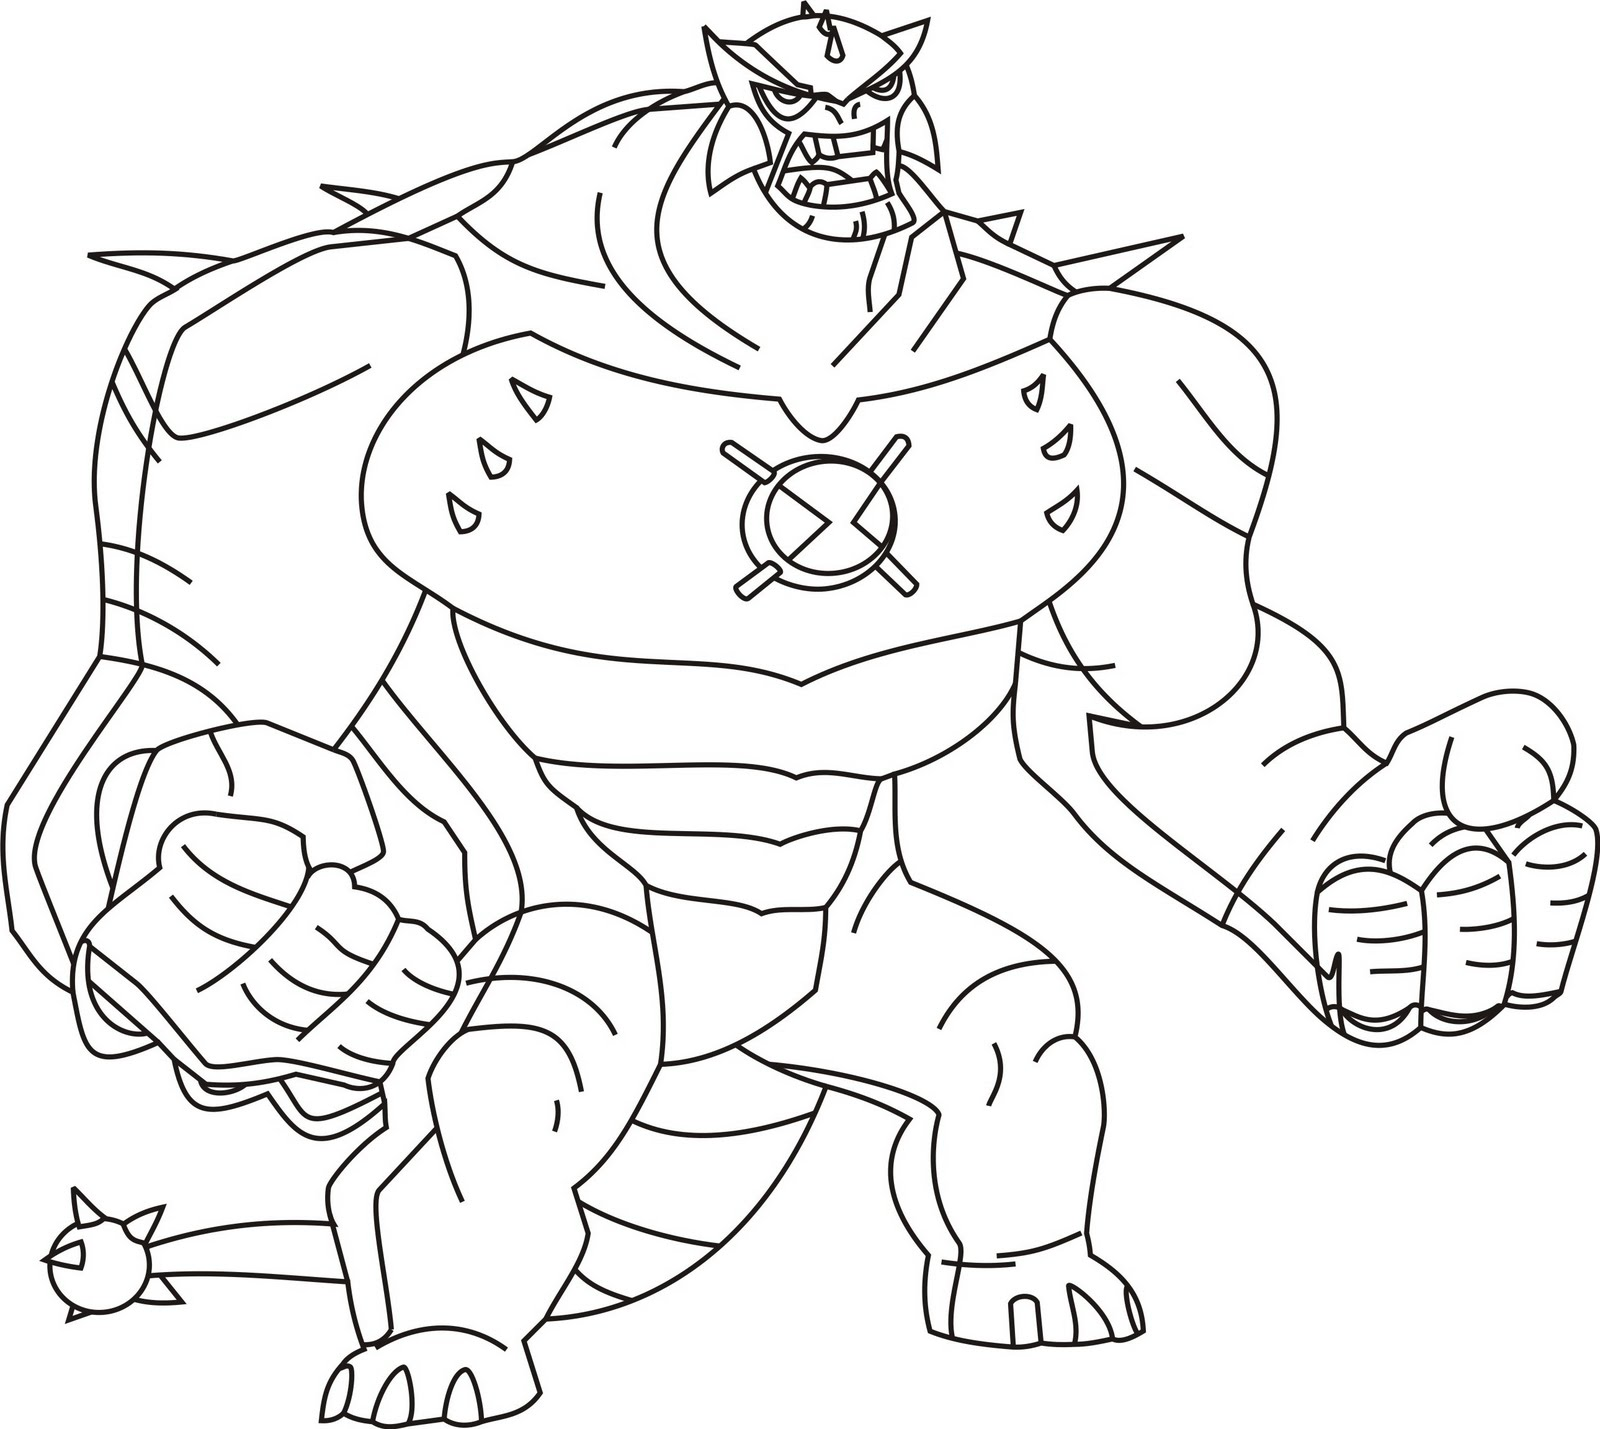 Ben 10 Coloring Pages Ben 10 Coloring Pages  Coloring Kids